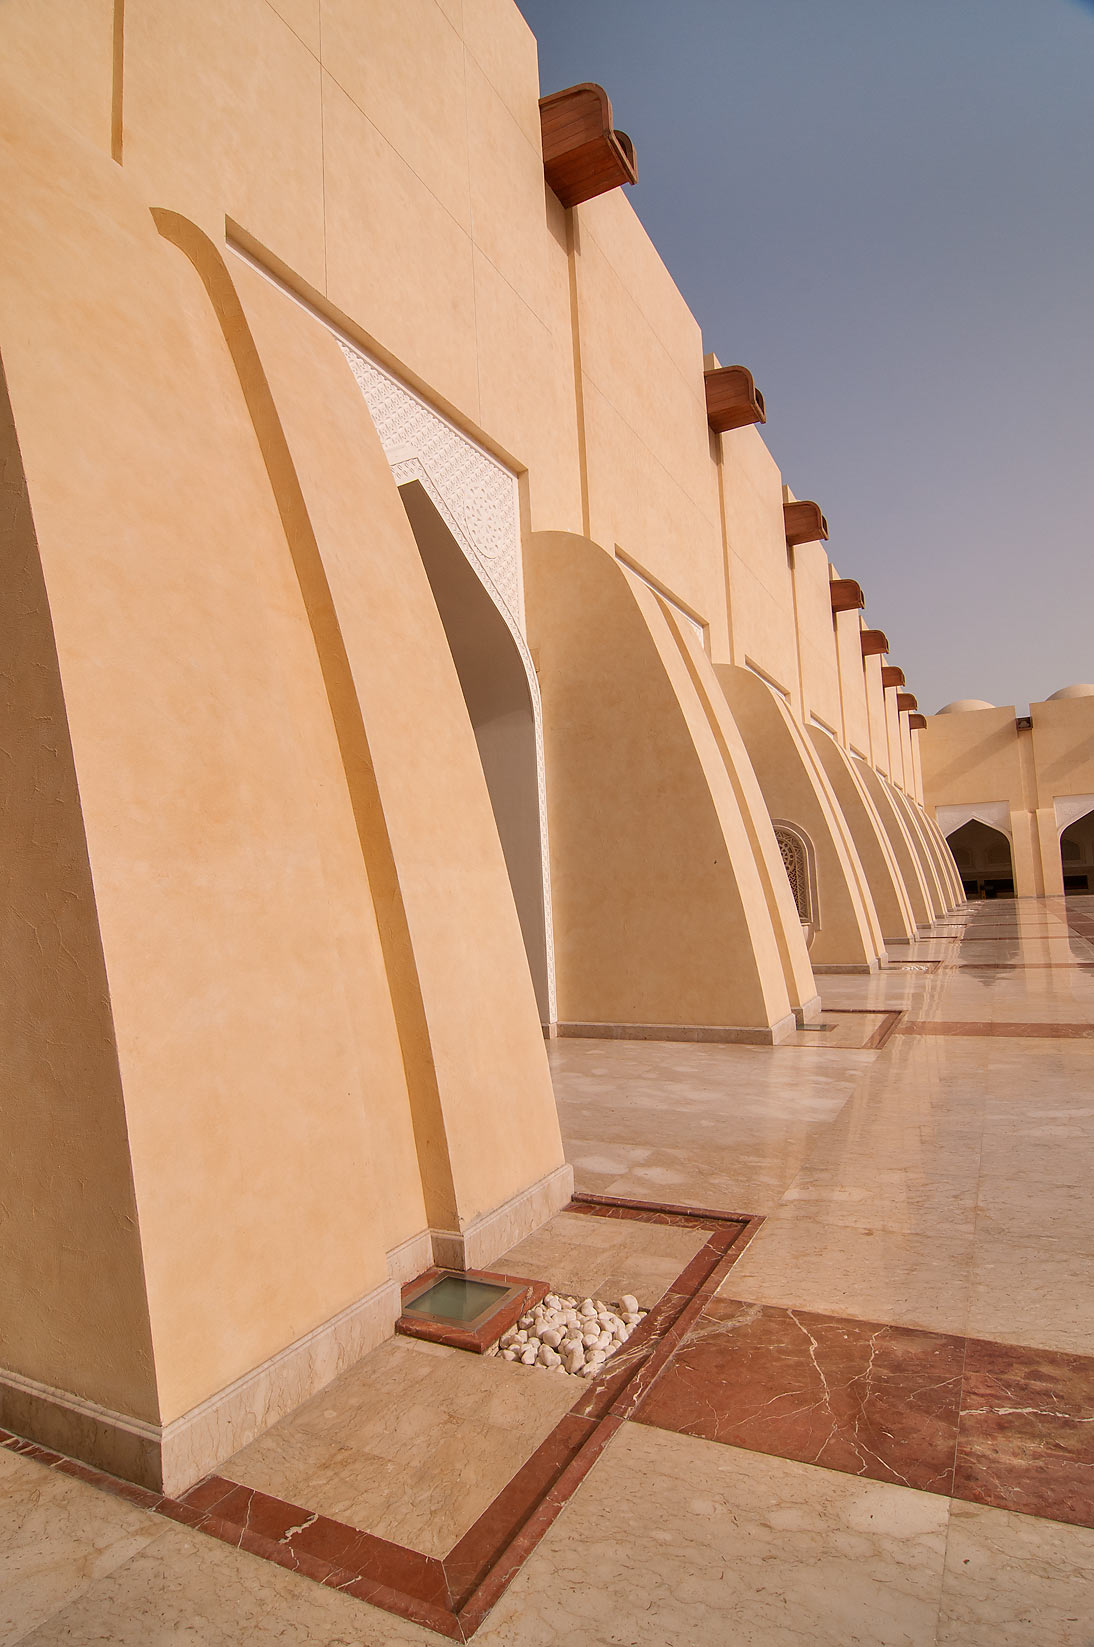 Border of courtyard of State Mosque (Sheikh Muhammad Ibn Abdul Wahhab Mosque). Doha, Qatar